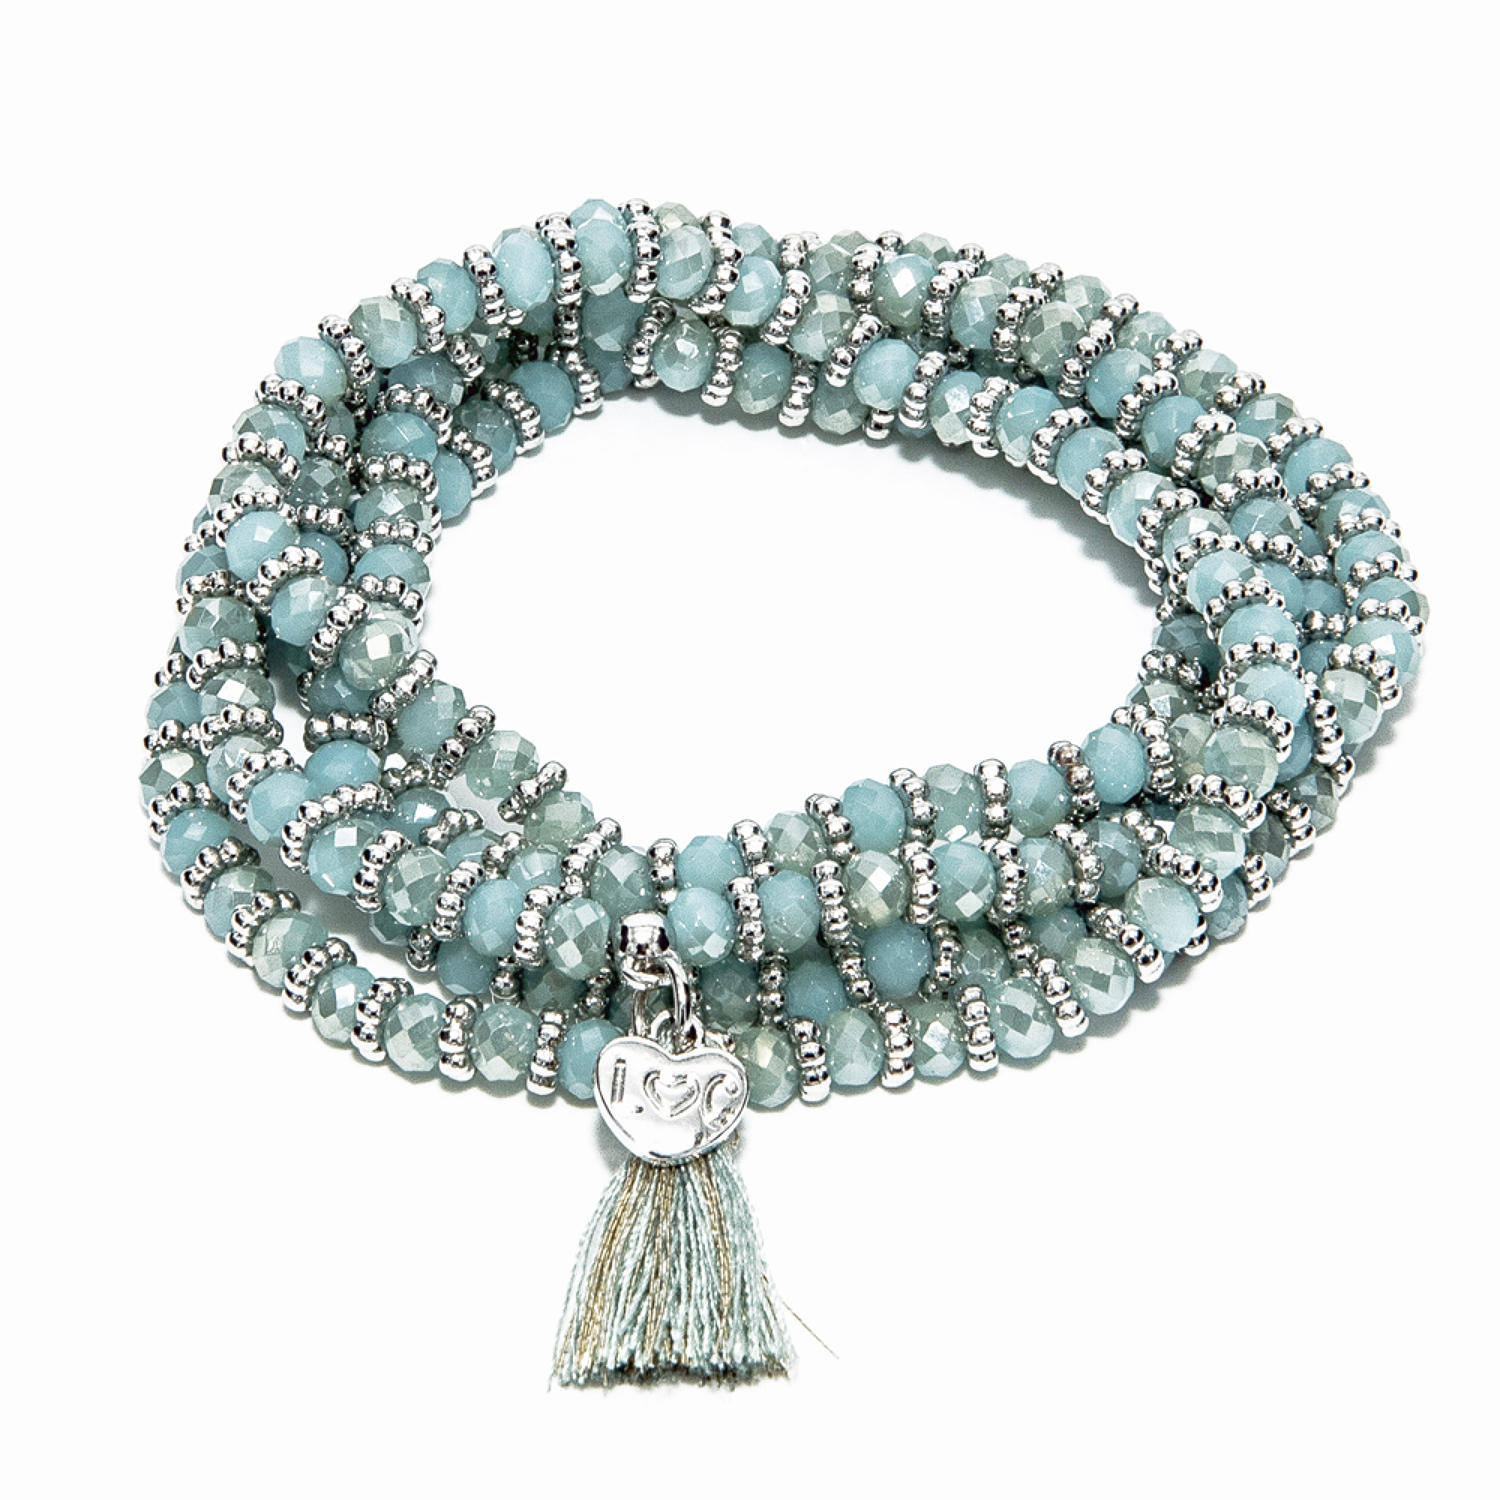 Balearic Aqua Crystal Wrap Bracelet/Necklace